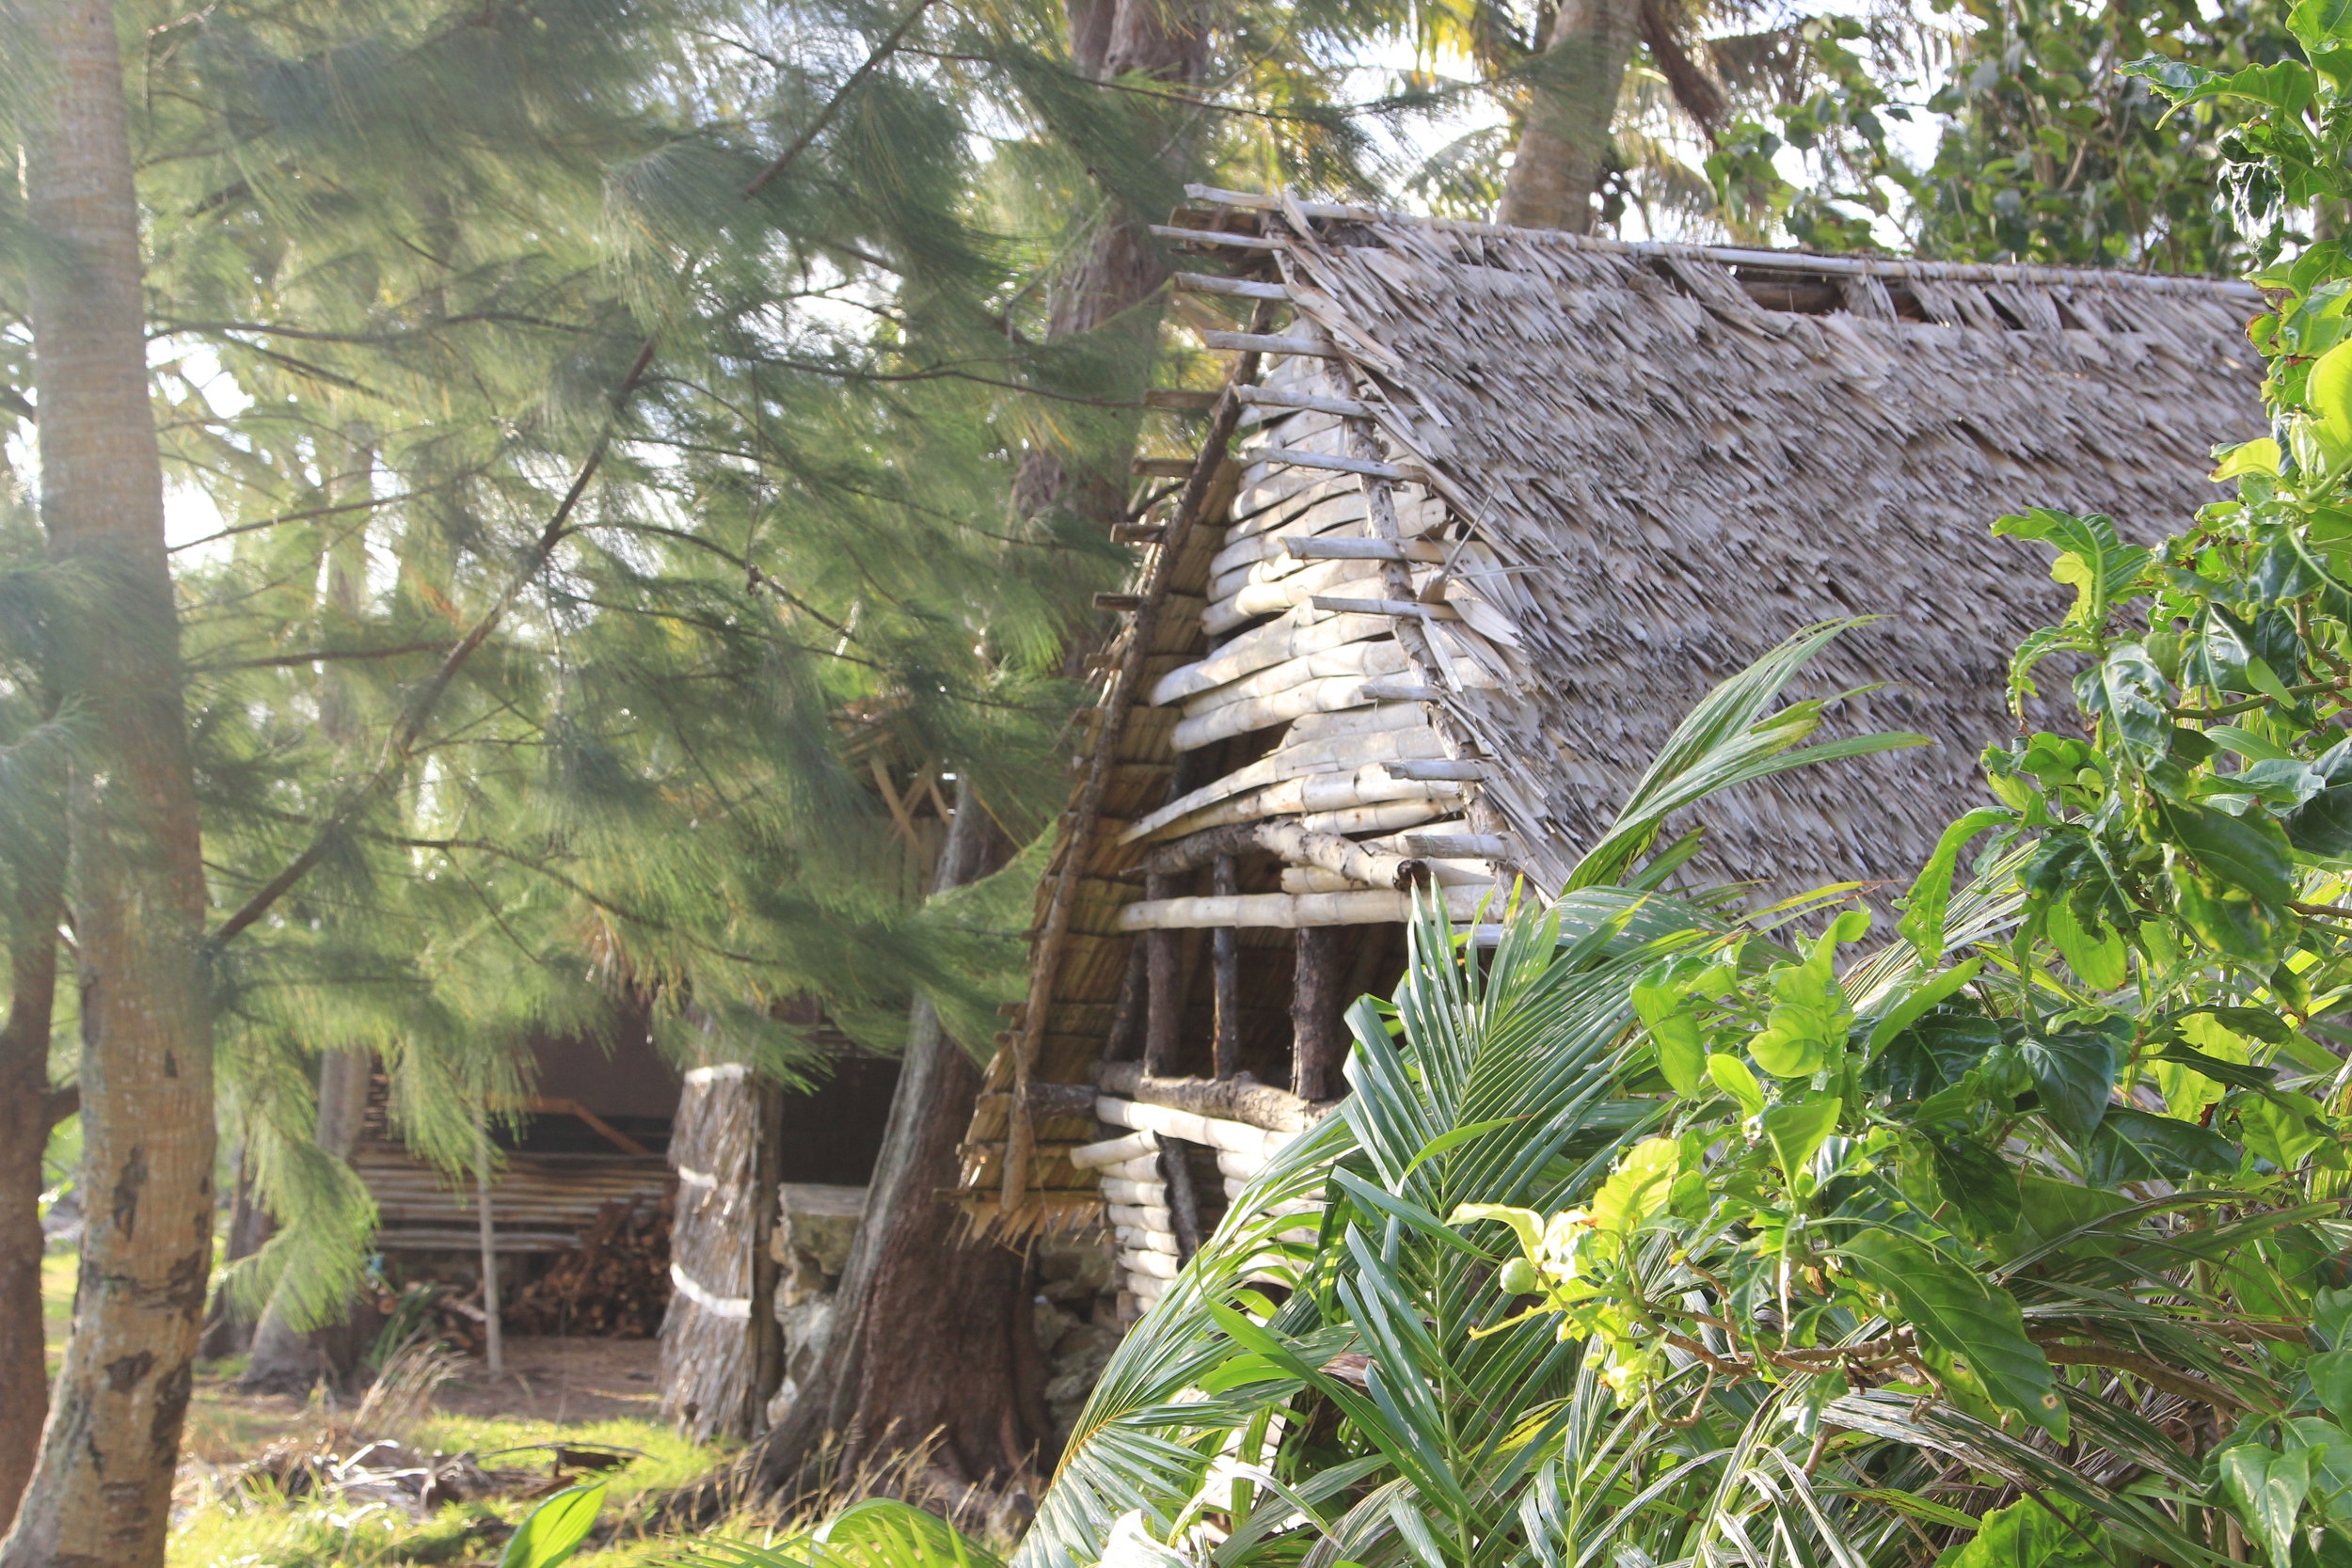 Hut at Gef Pa'go Cultural Village, Inarajan